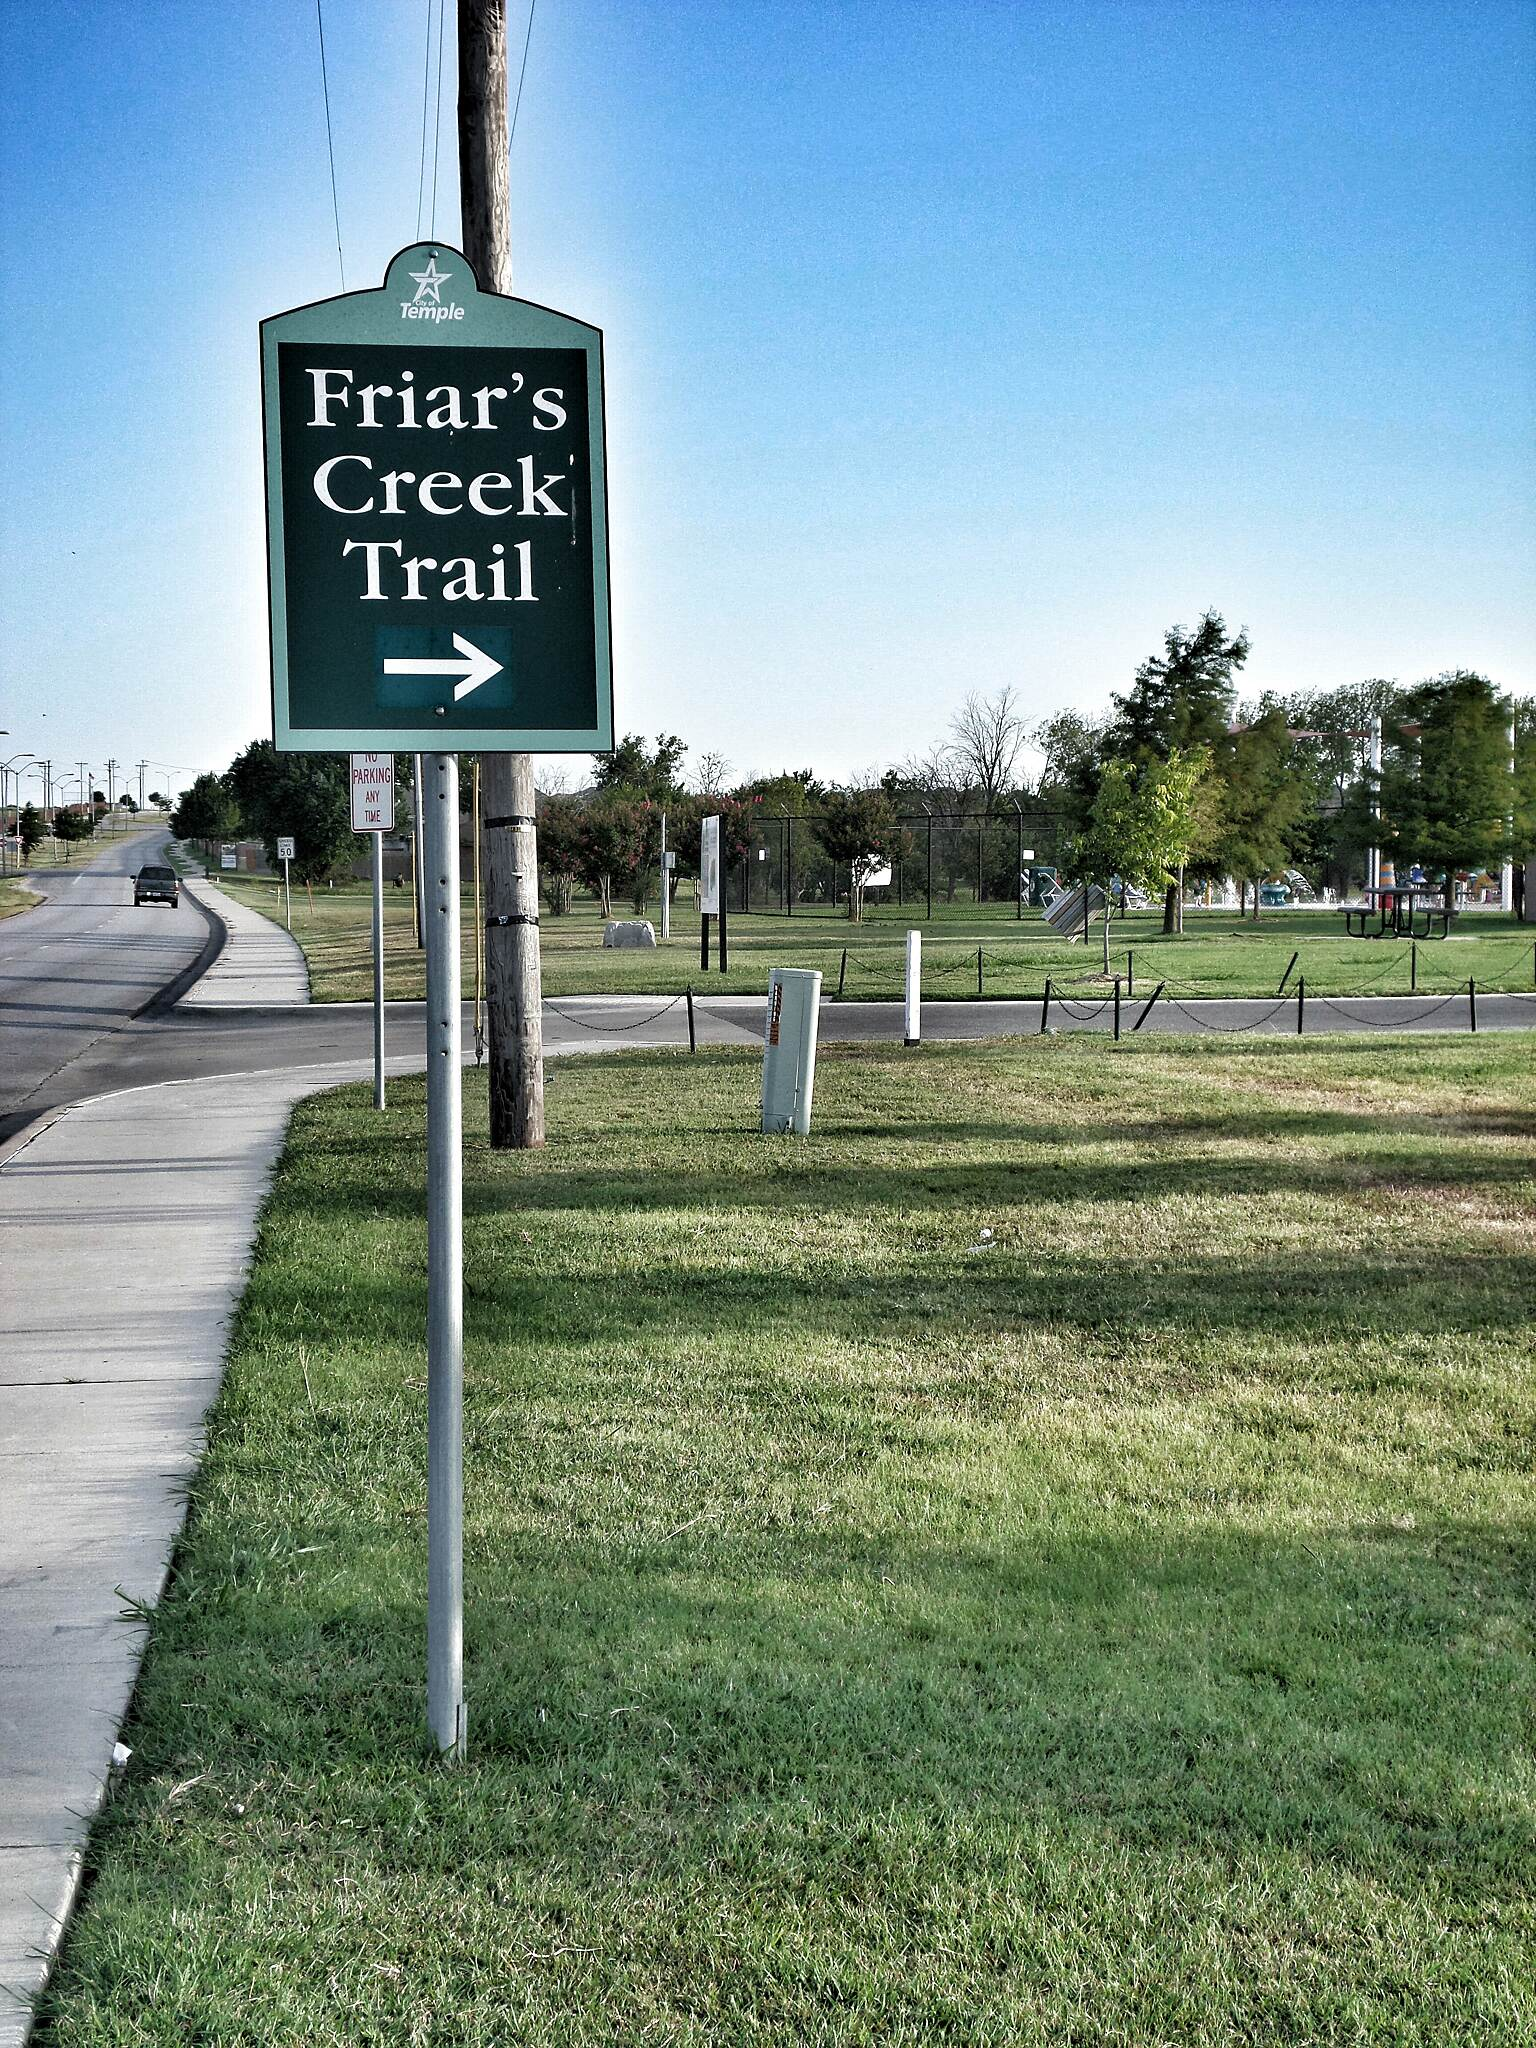 Friars Creek Hike & Bike Trail Beginning of the trail